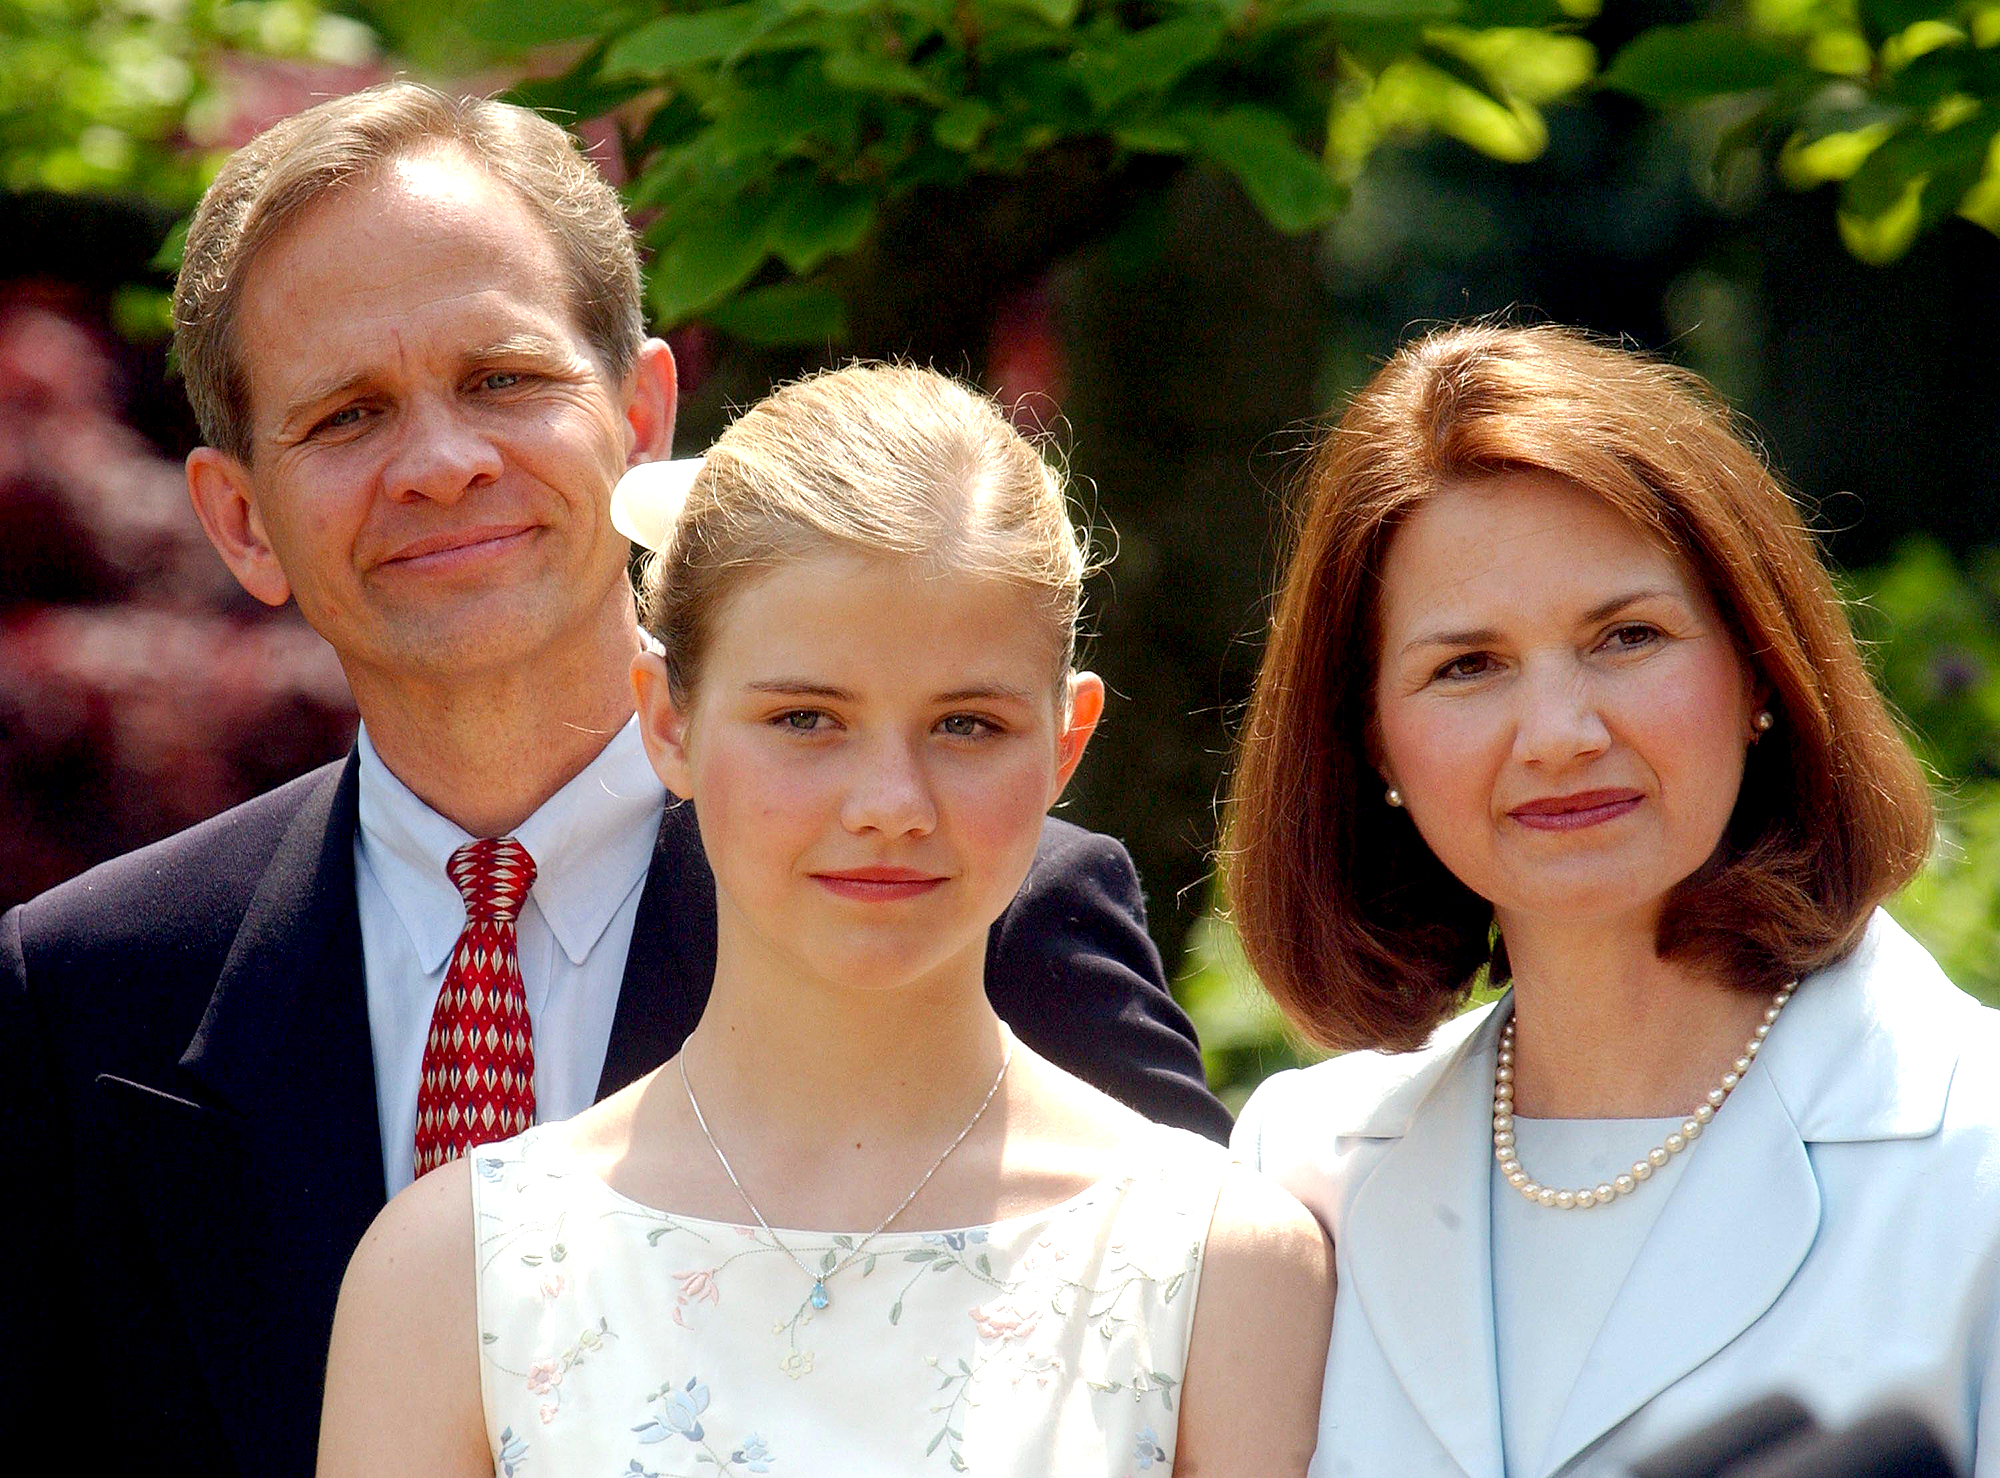 Elizabeth Smart's Father Ed Comes Out as Gay, Divorcing Wife